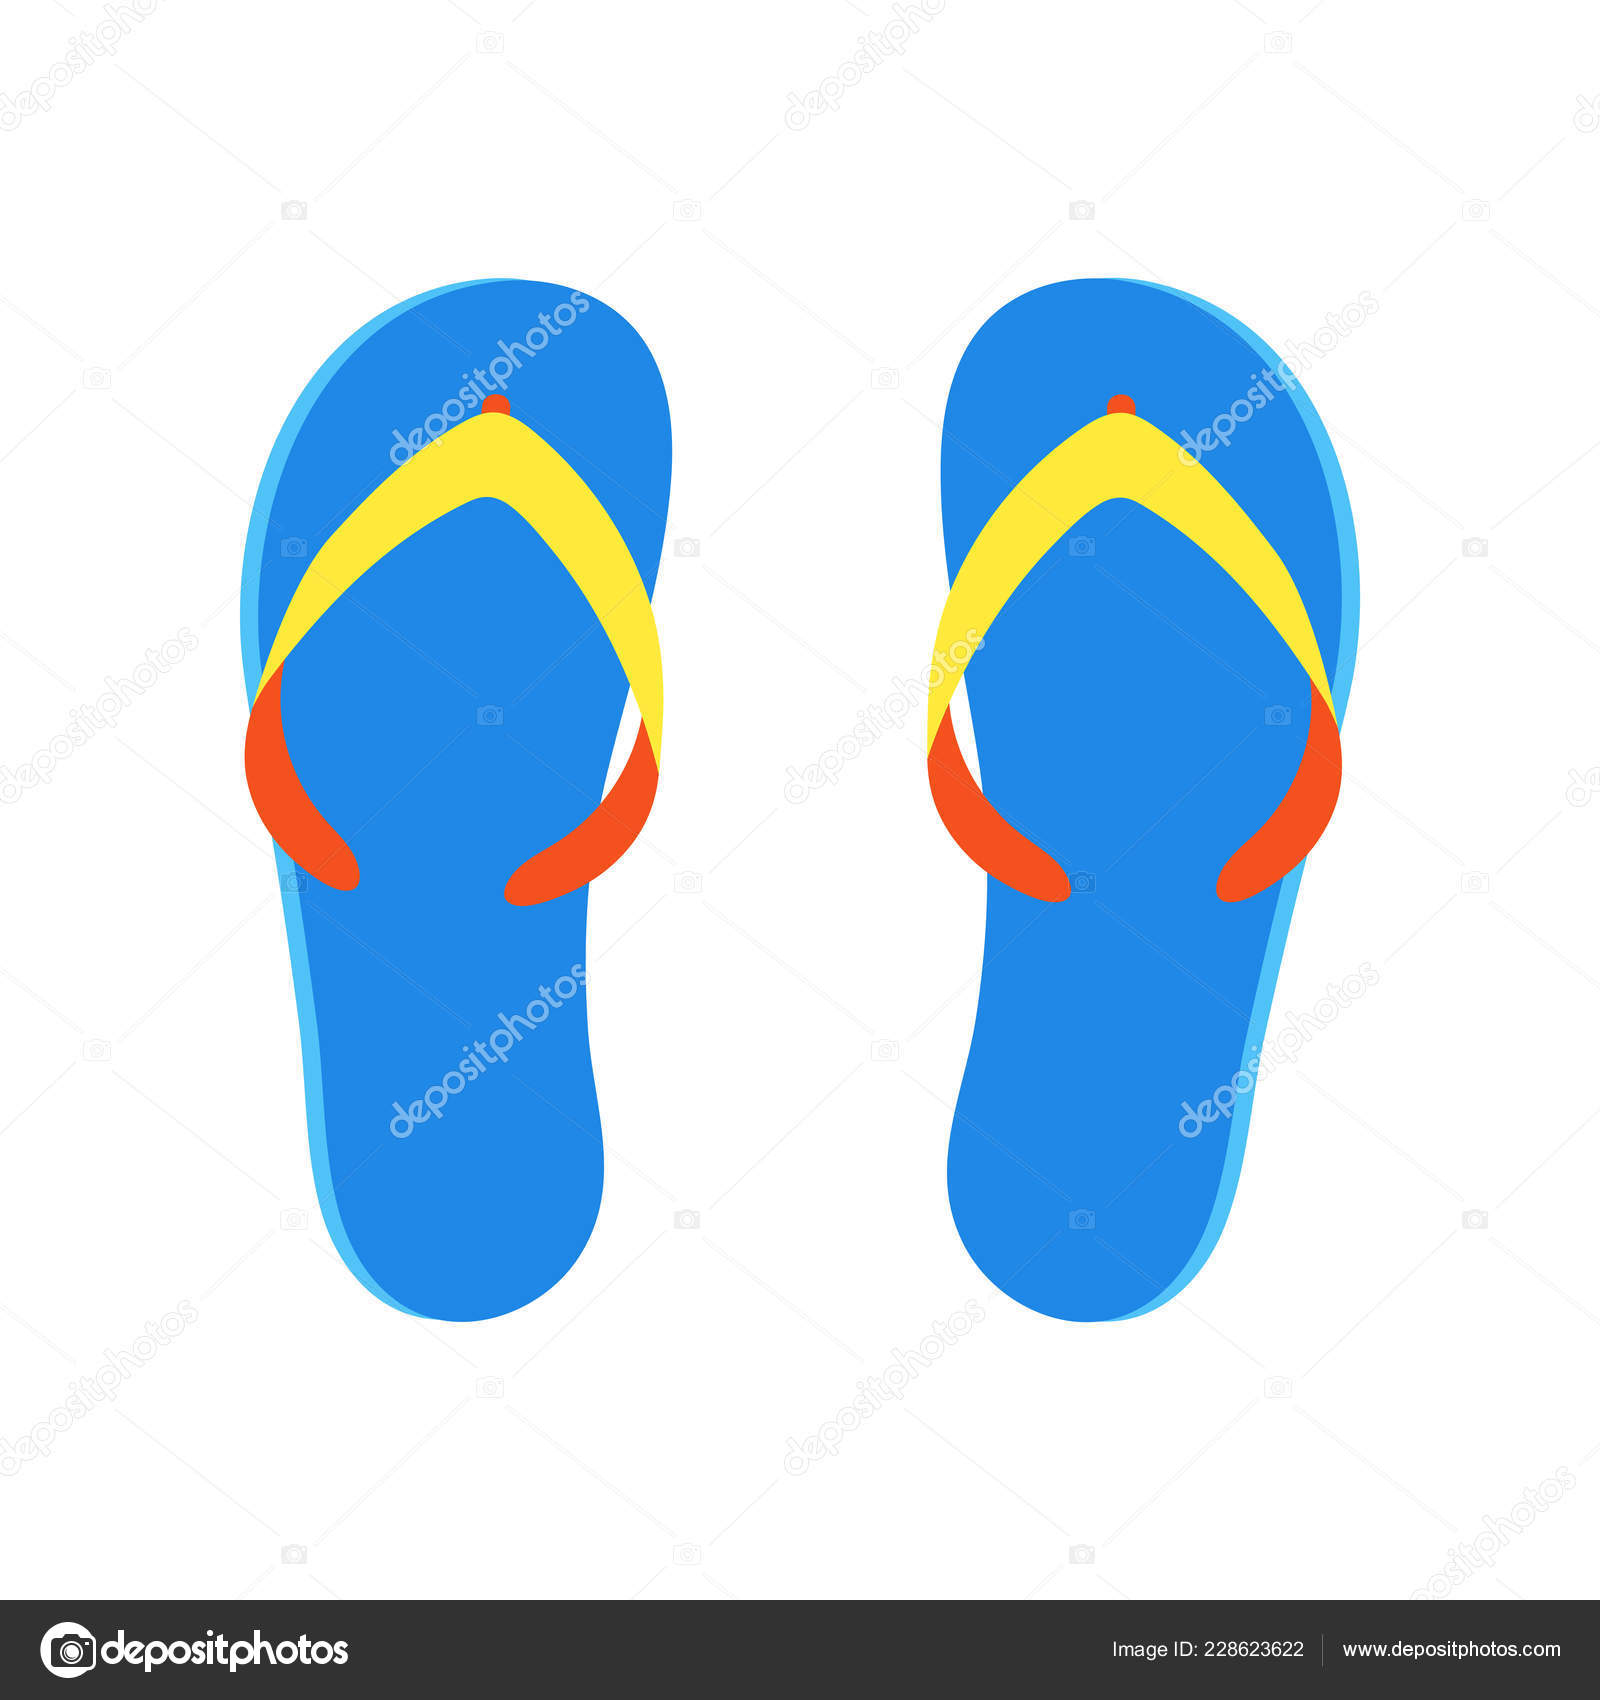 0331d84f9 Beach slippers flip flops flat style design vector illustration isolated on  white background icon sign. Summer beach shoes sandals.– stock illustration